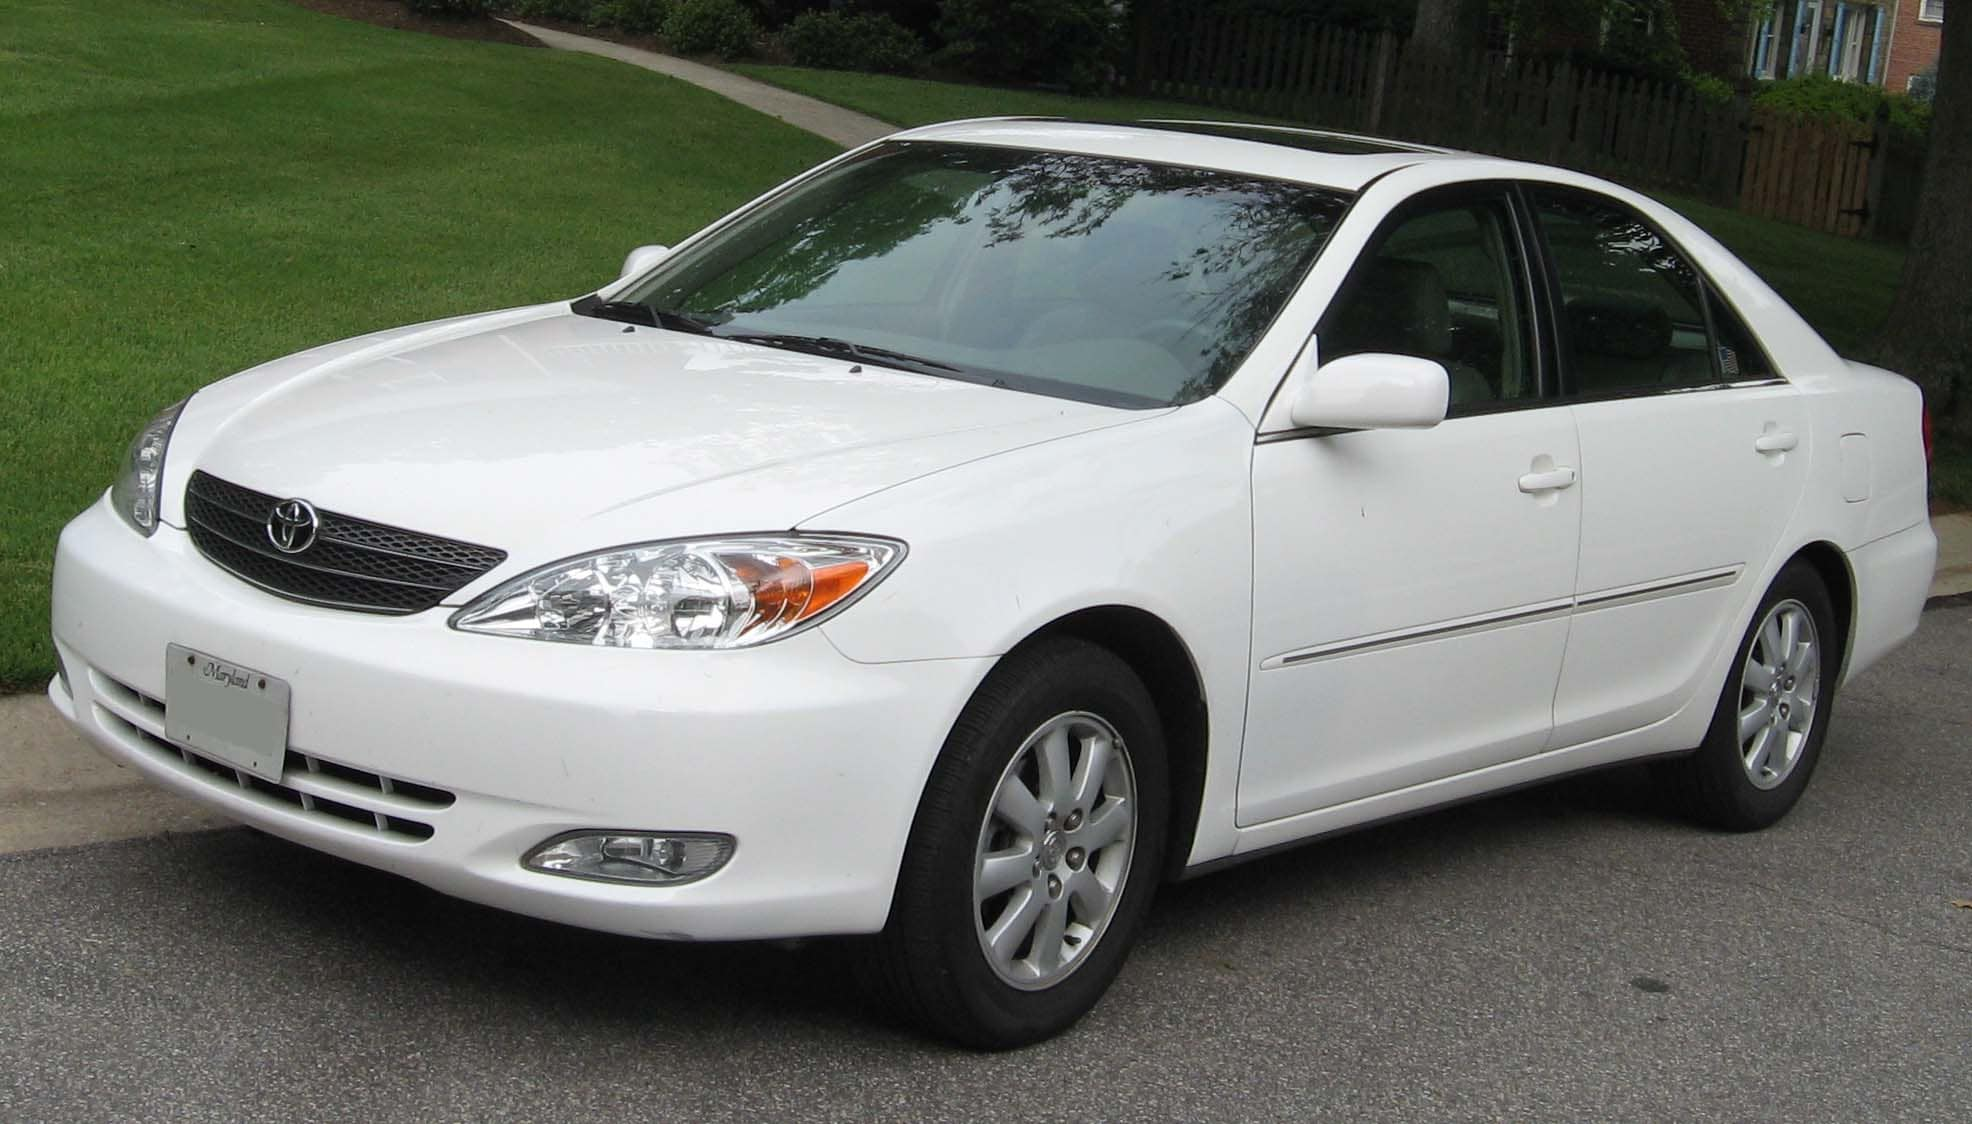 2010 toyota camry information specs features and. Black Bedroom Furniture Sets. Home Design Ideas